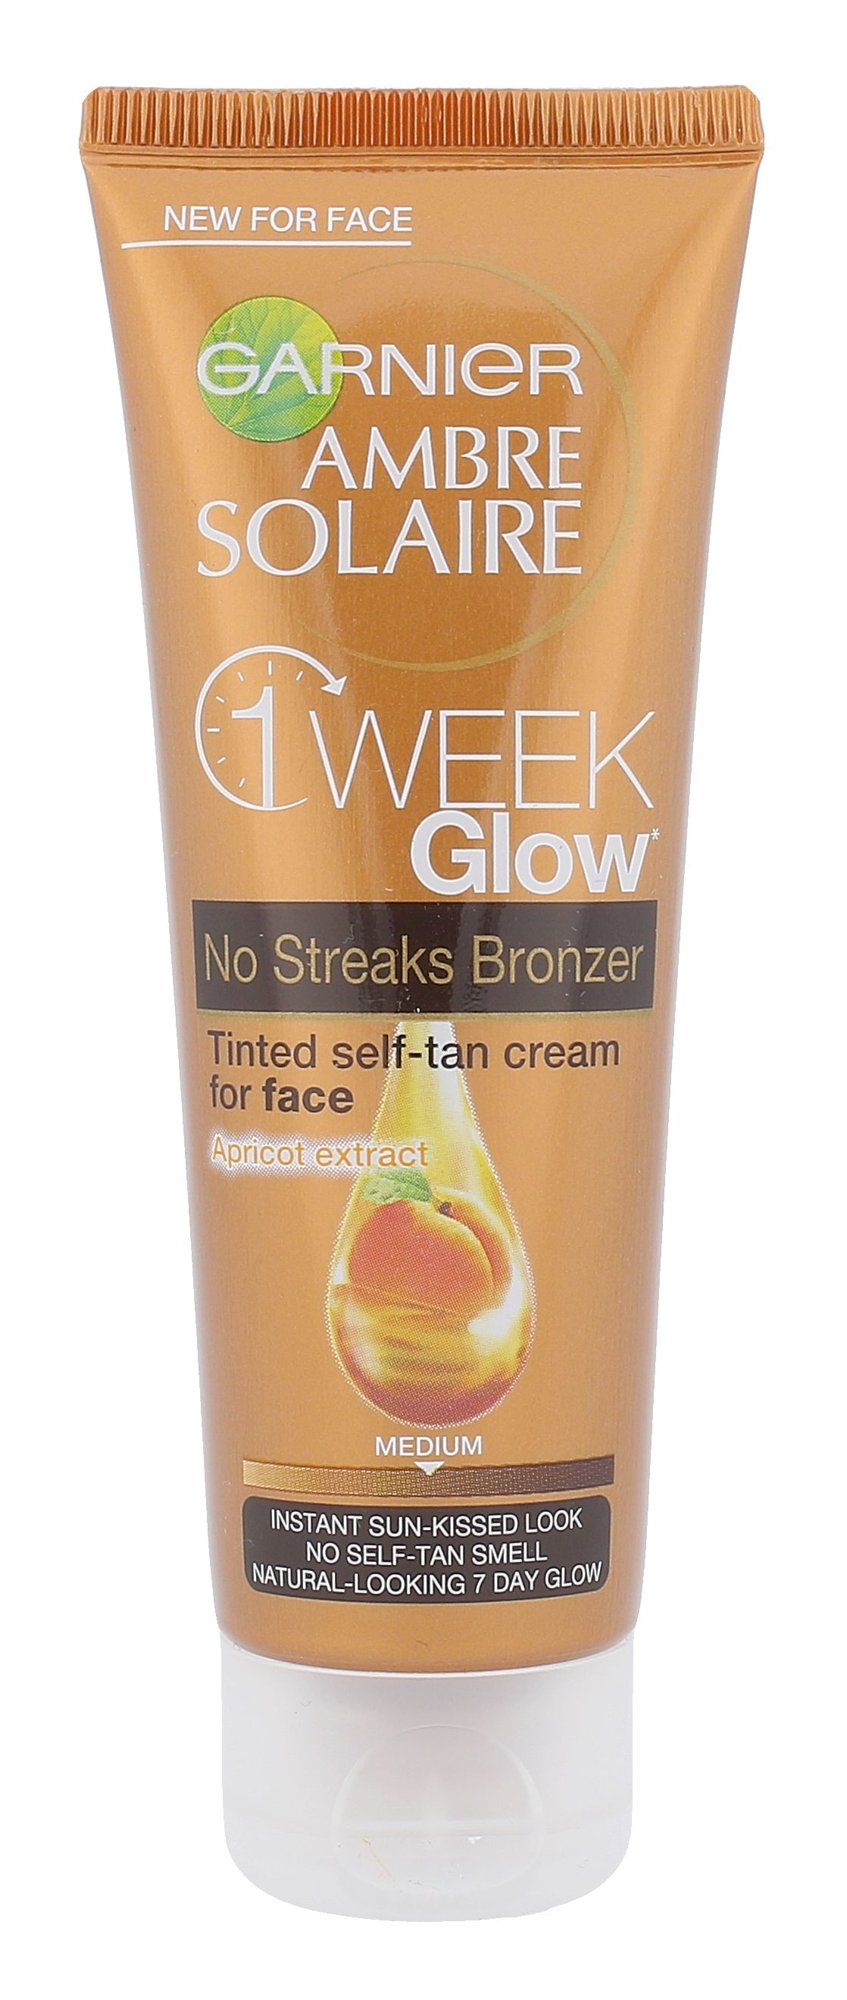 Garnier Ambre Solaire Cosmetic 50ml Medium One Week Glow Self-Tan